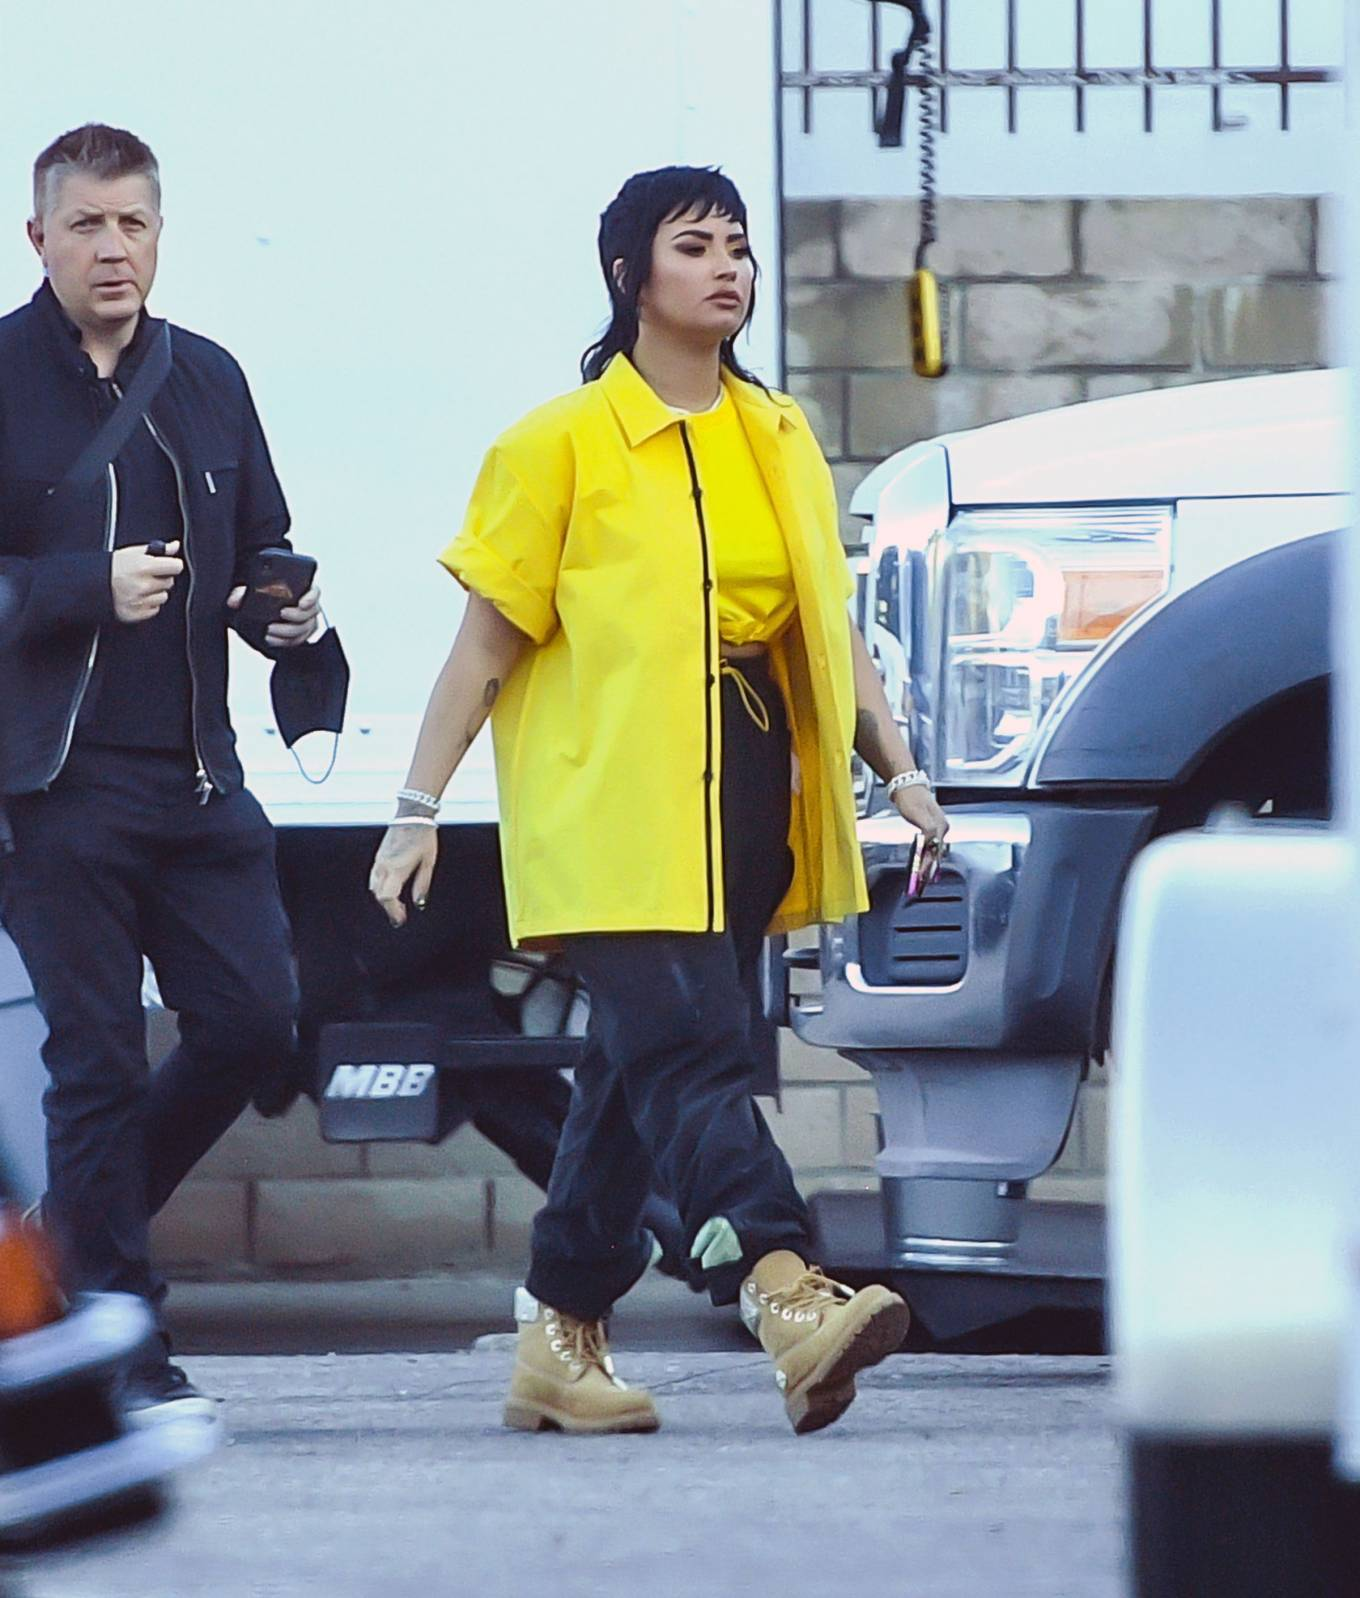 Demi Lovato - on the set of a music video of an unreleased song in L.A.